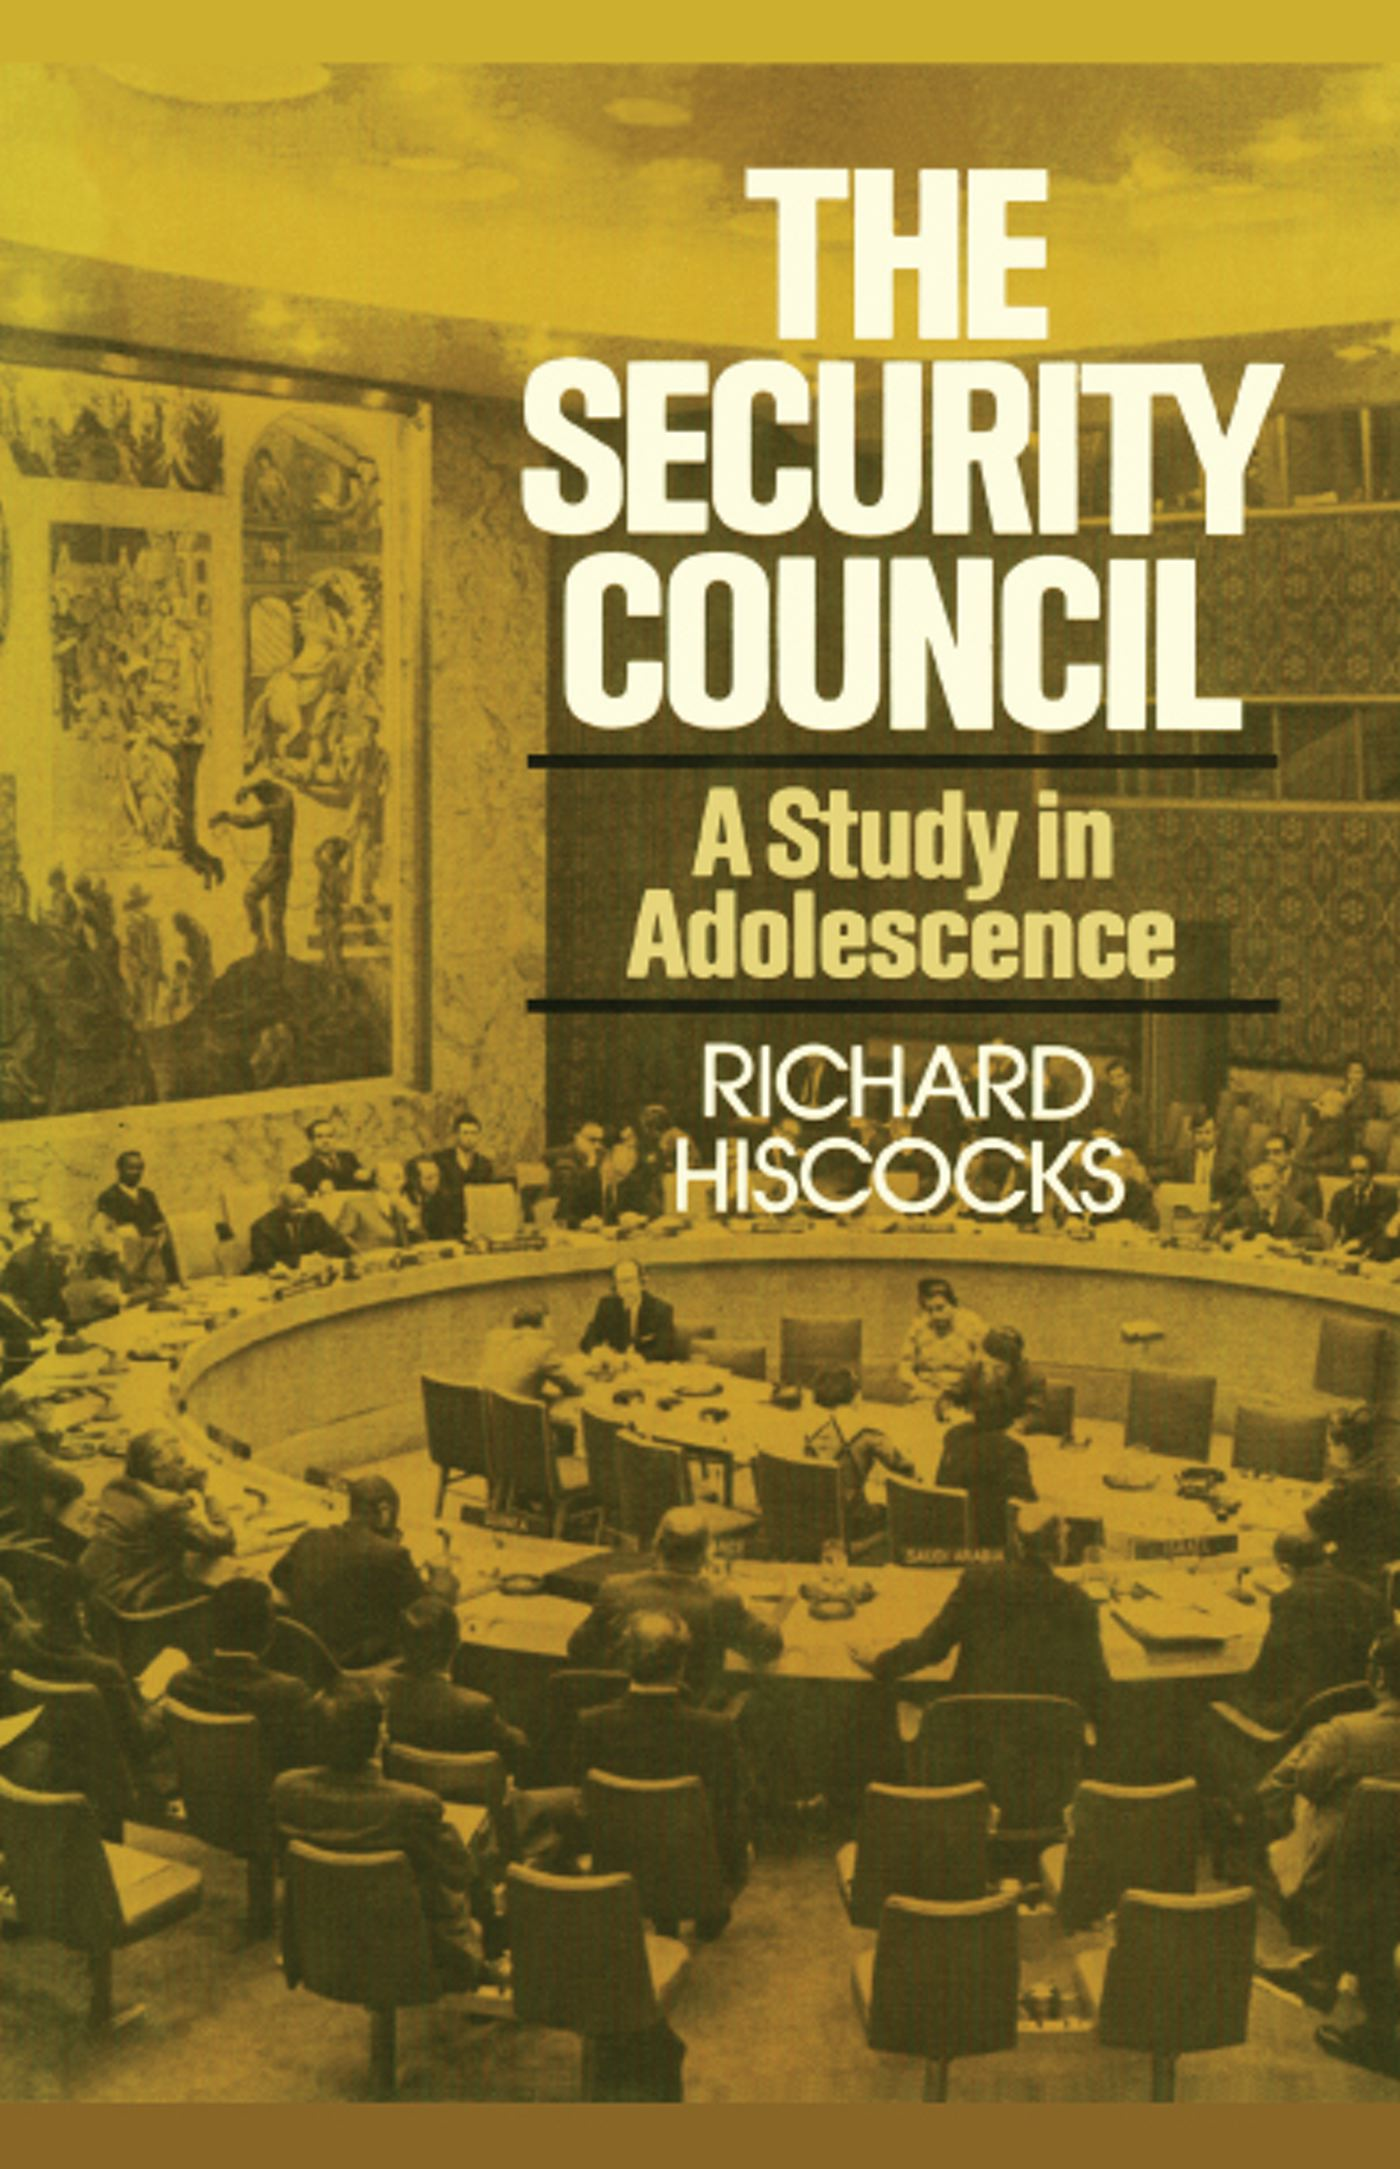 Security-council-(a-study-in-adolescence)-9781416577737_hr